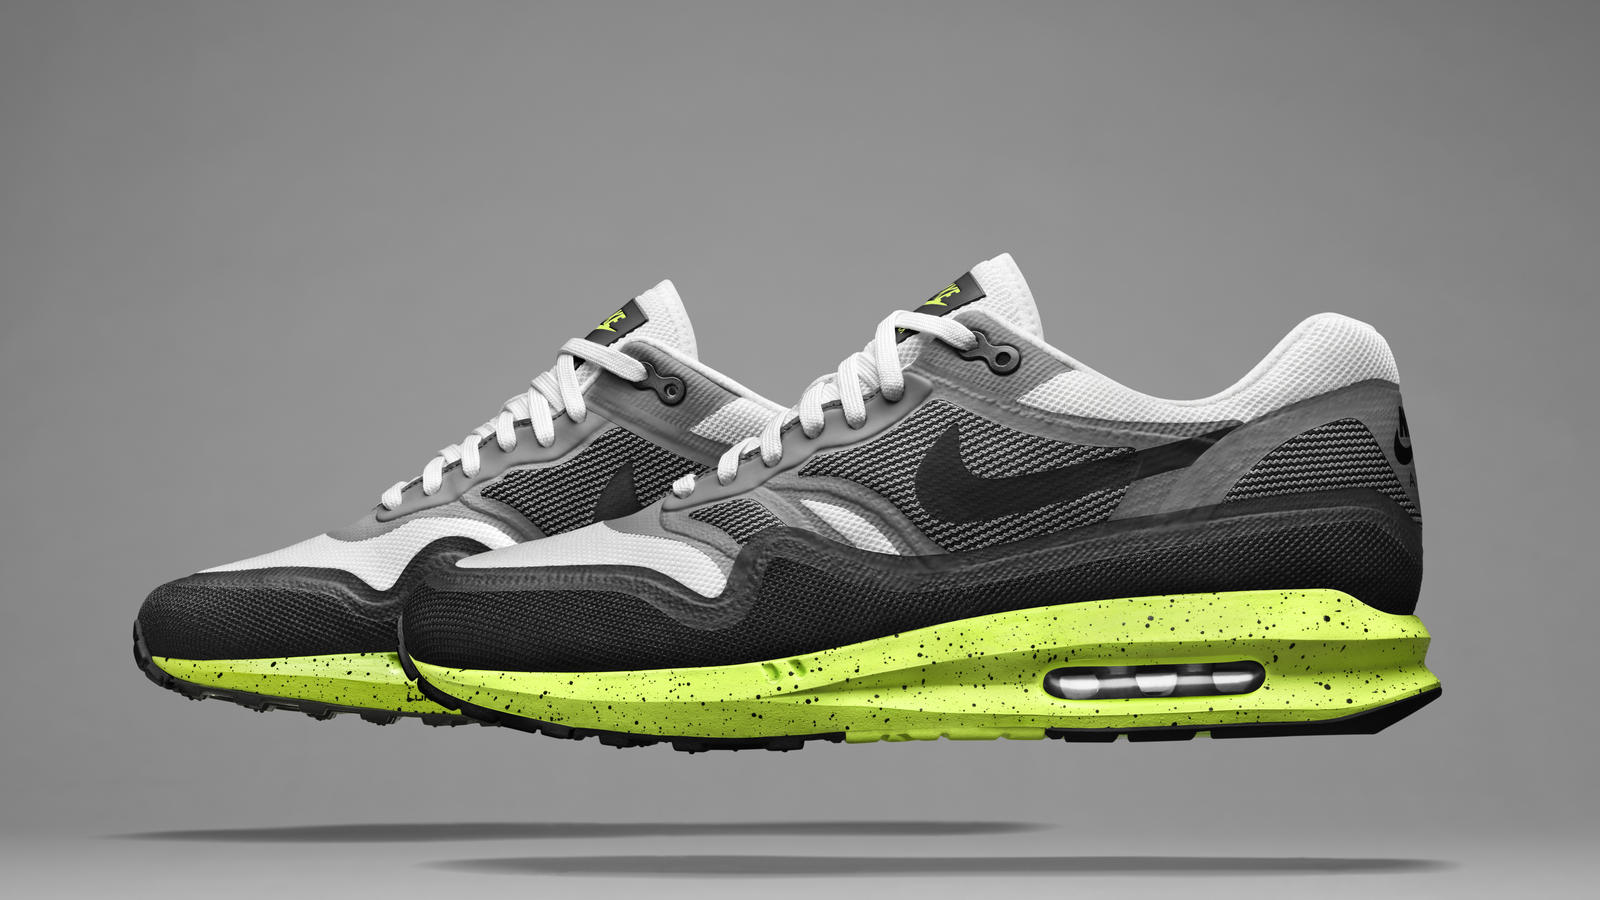 Nike Air Max Lunar1 Volt On Feet Sneaker Review | Sneakers